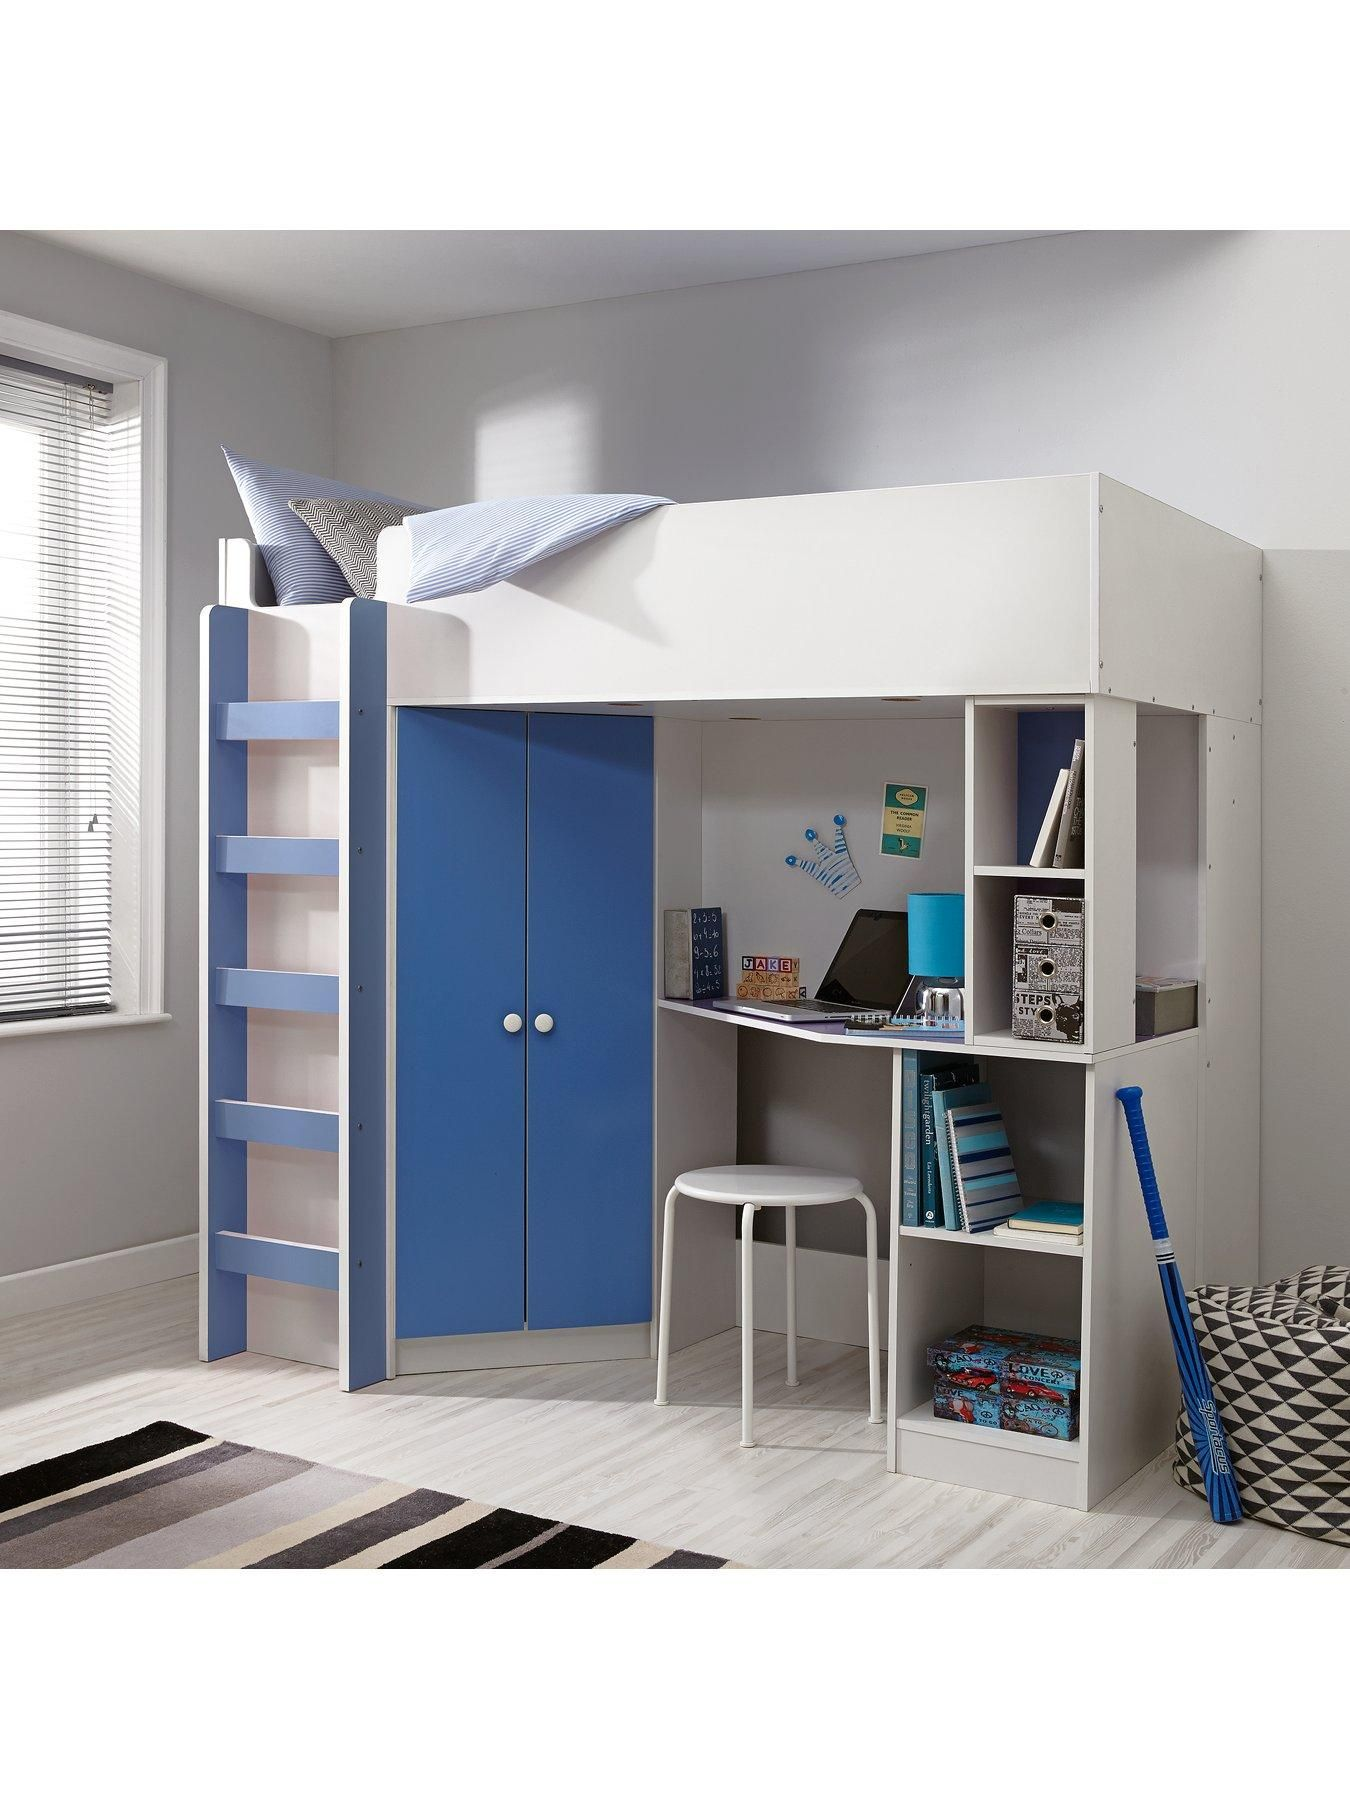 Kidspace new metro high sleeper bed with desk wardrobe shelves and